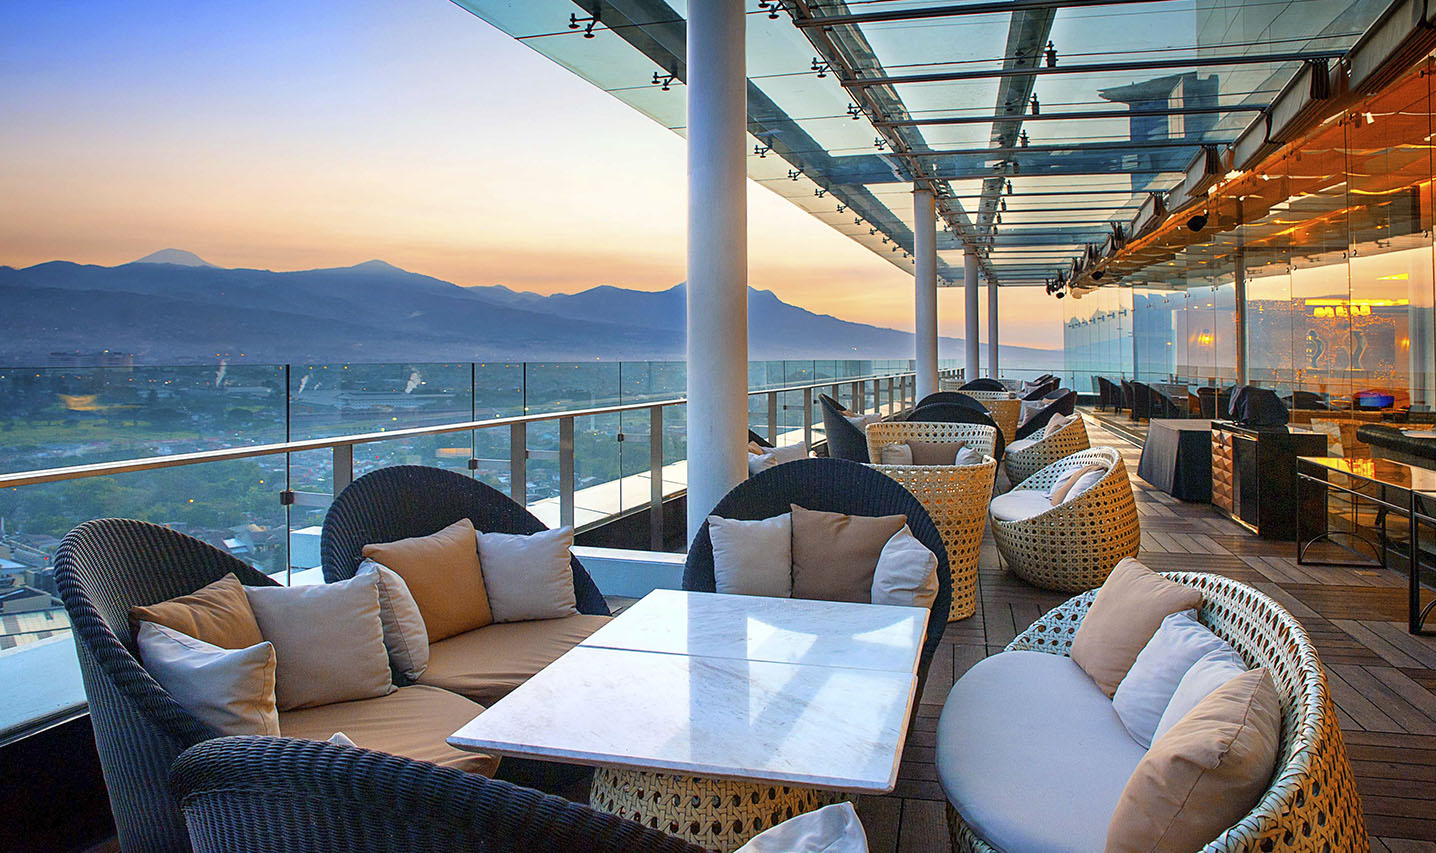 The 18th Restaurant and Lounge Trans Luxury Hotel